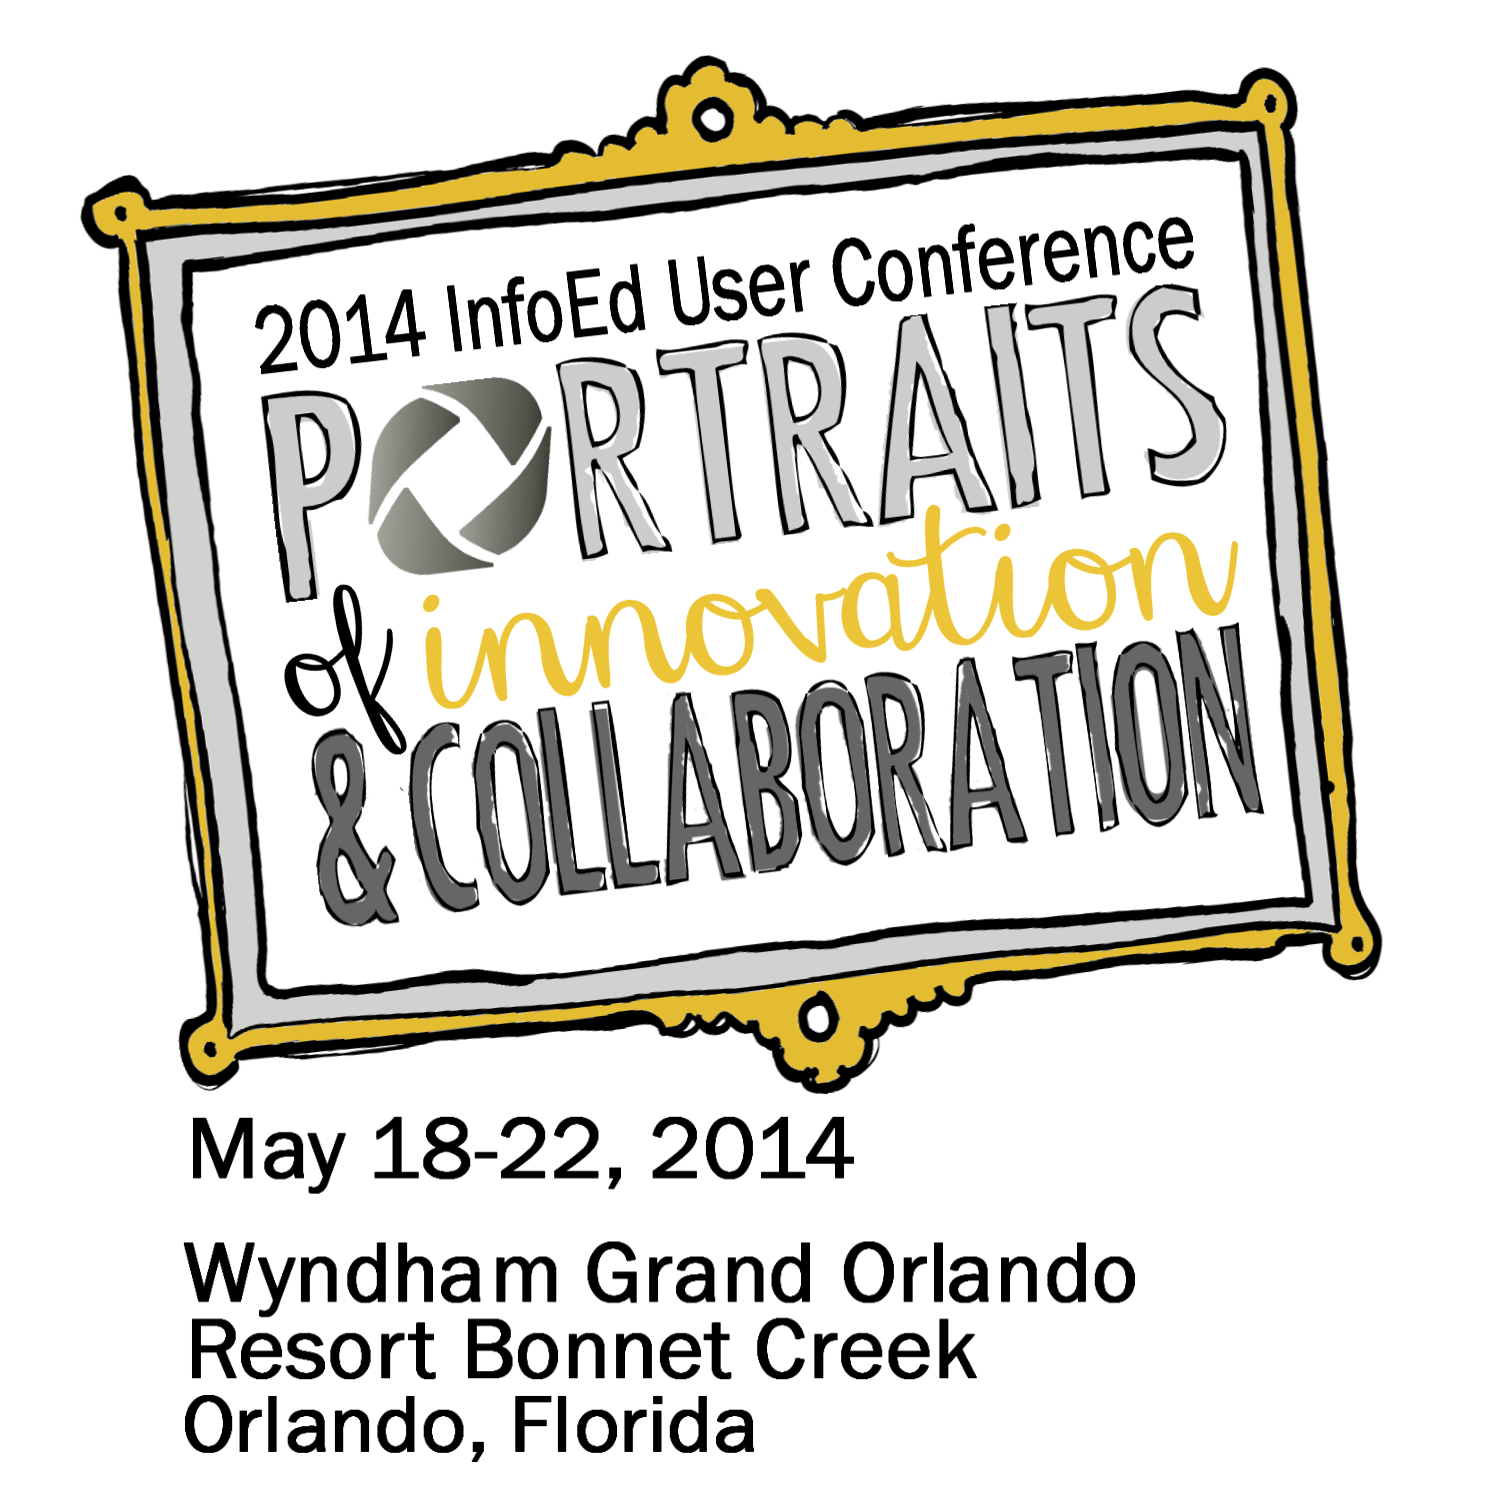 2014 InfoEd User Conference – Portraits of Innovation and Collaboration